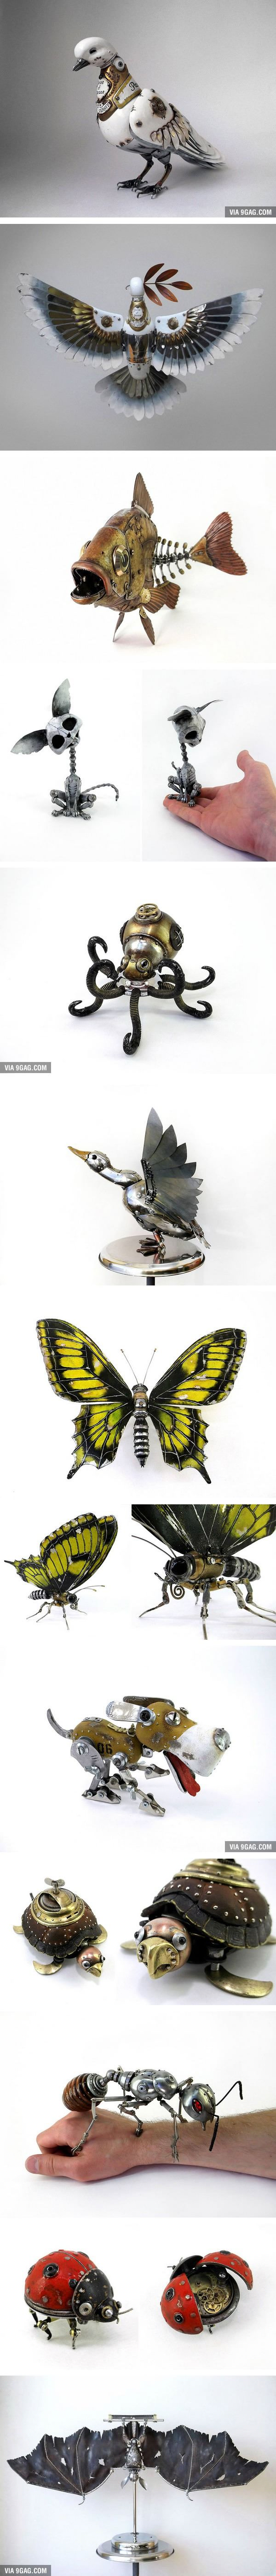 Russian Artist Creates Steampunk Animals From Old Car Parts, Watches And Electronics